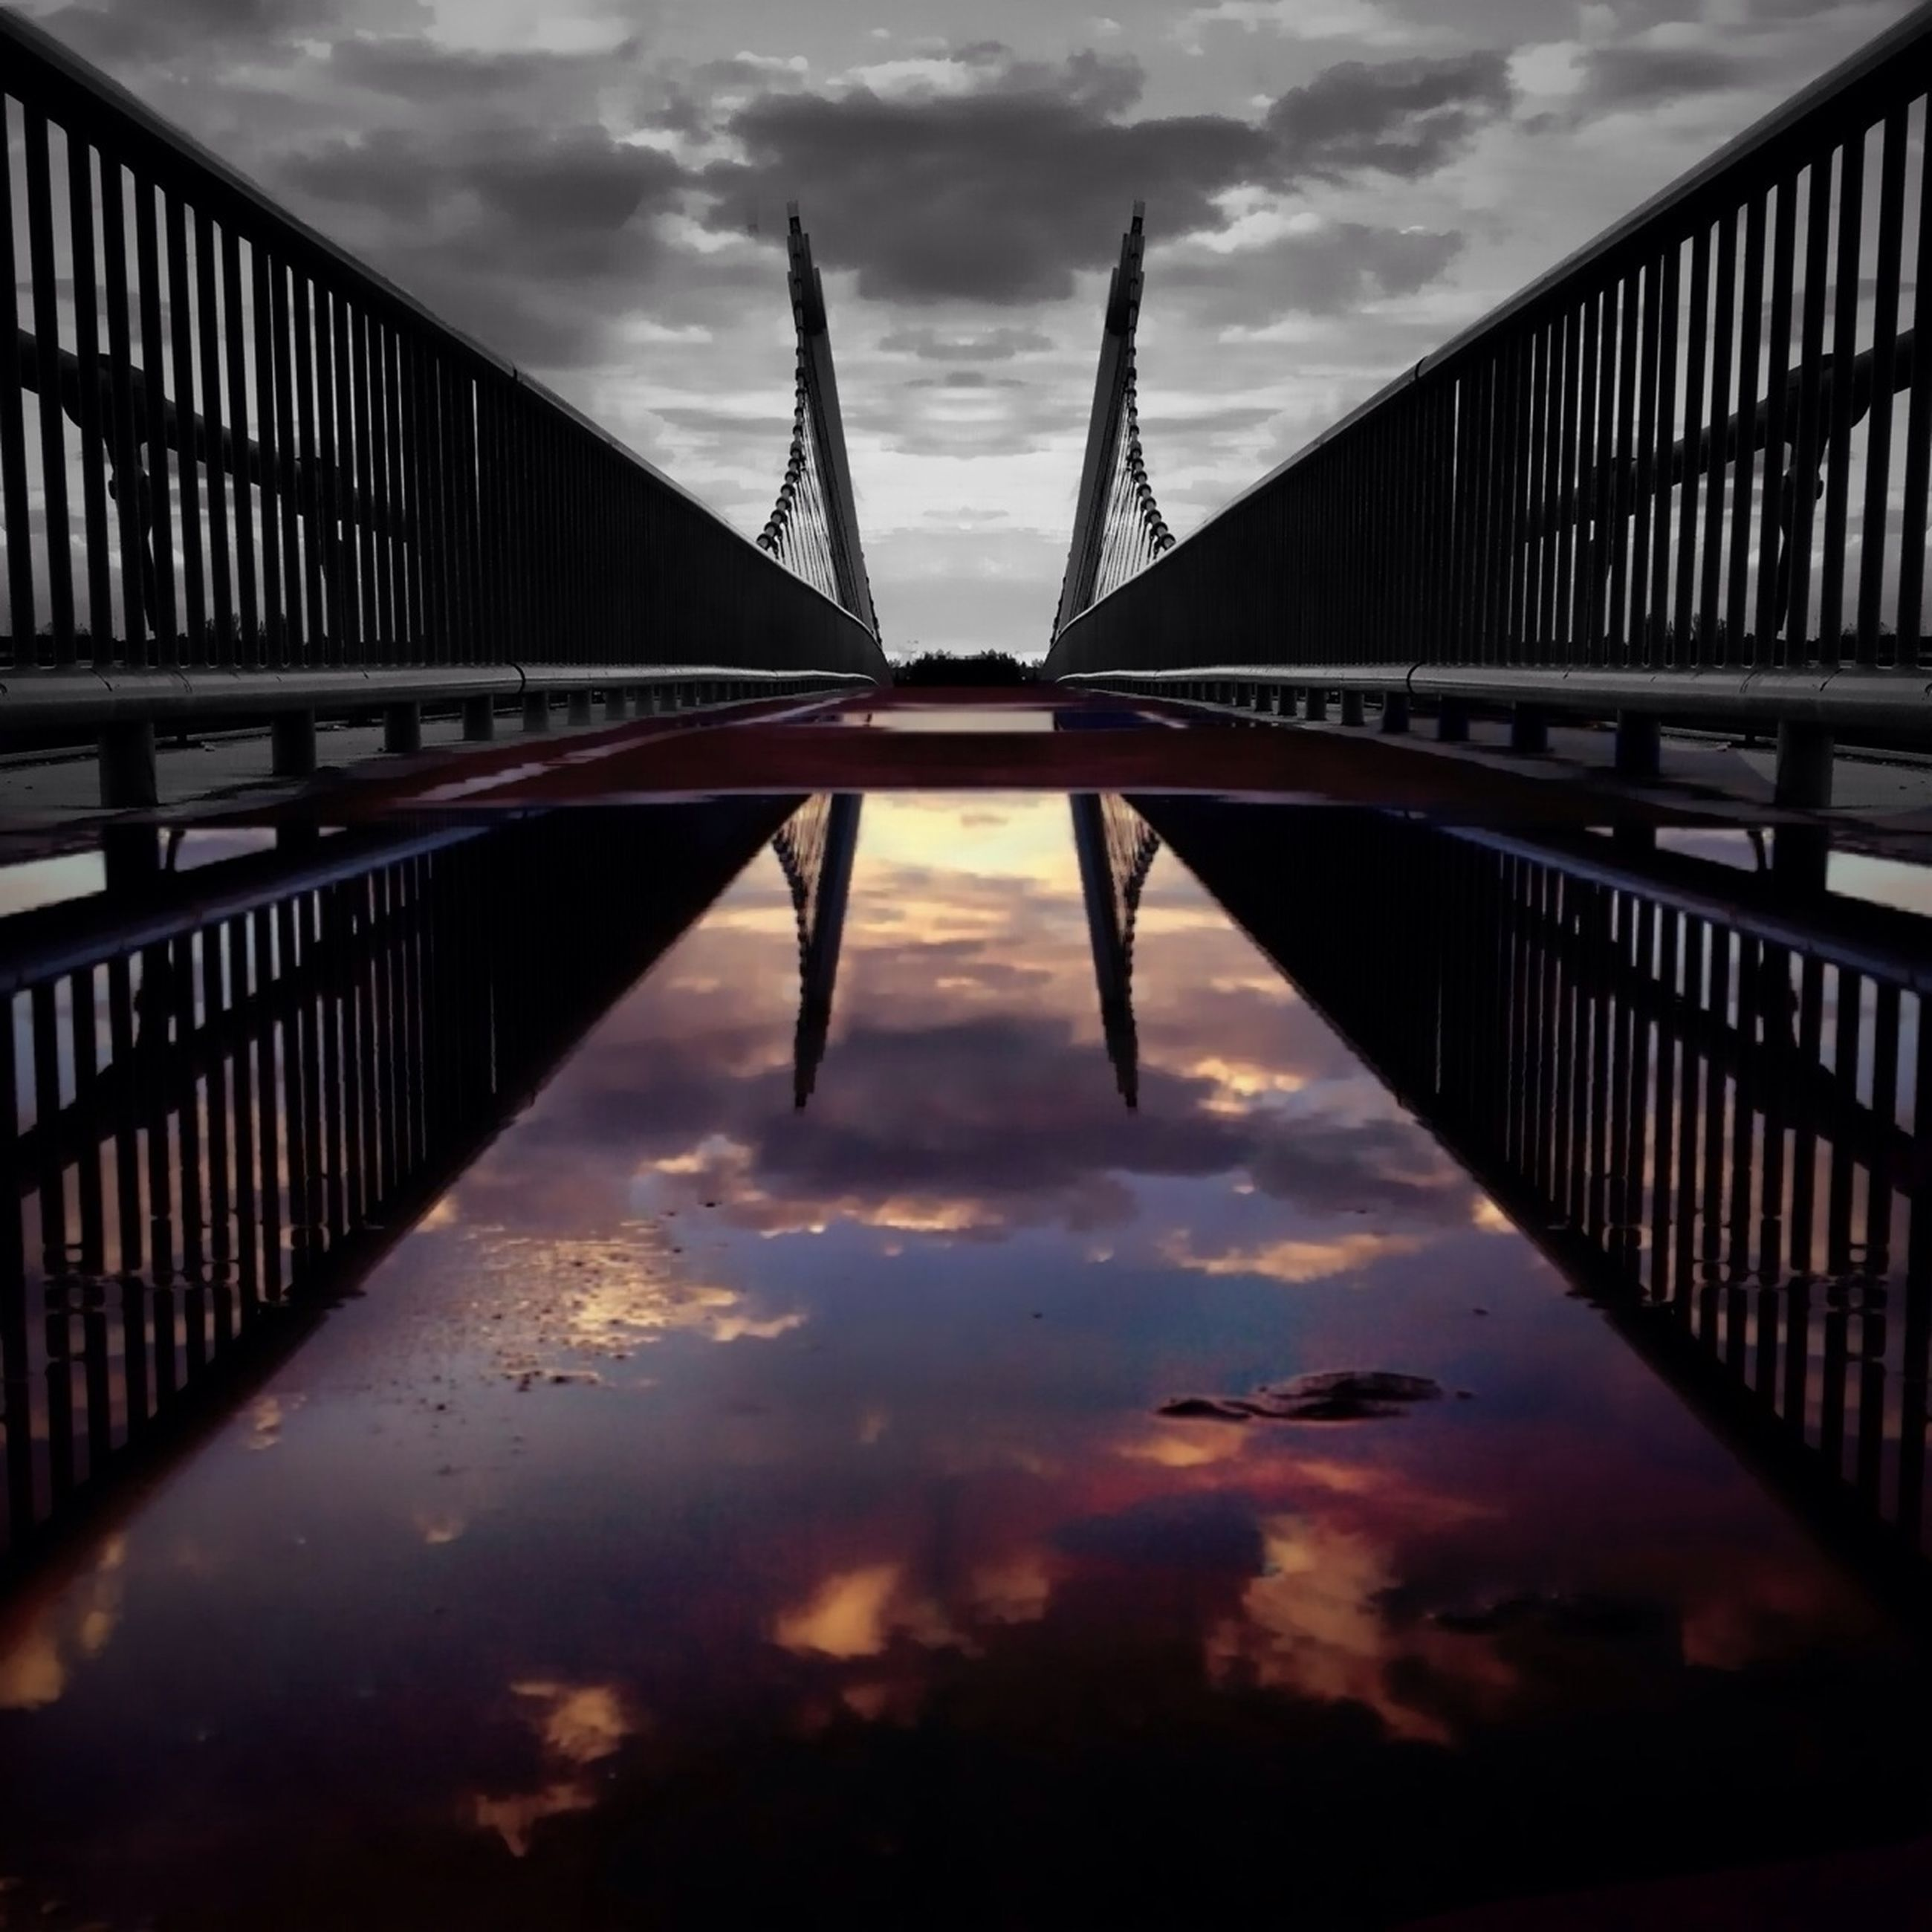 built structure, architecture, bridge - man made structure, sky, connection, cloud - sky, water, low angle view, engineering, bridge, cloudy, reflection, cloud, railing, river, sunset, footbridge, waterfront, outdoors, no people